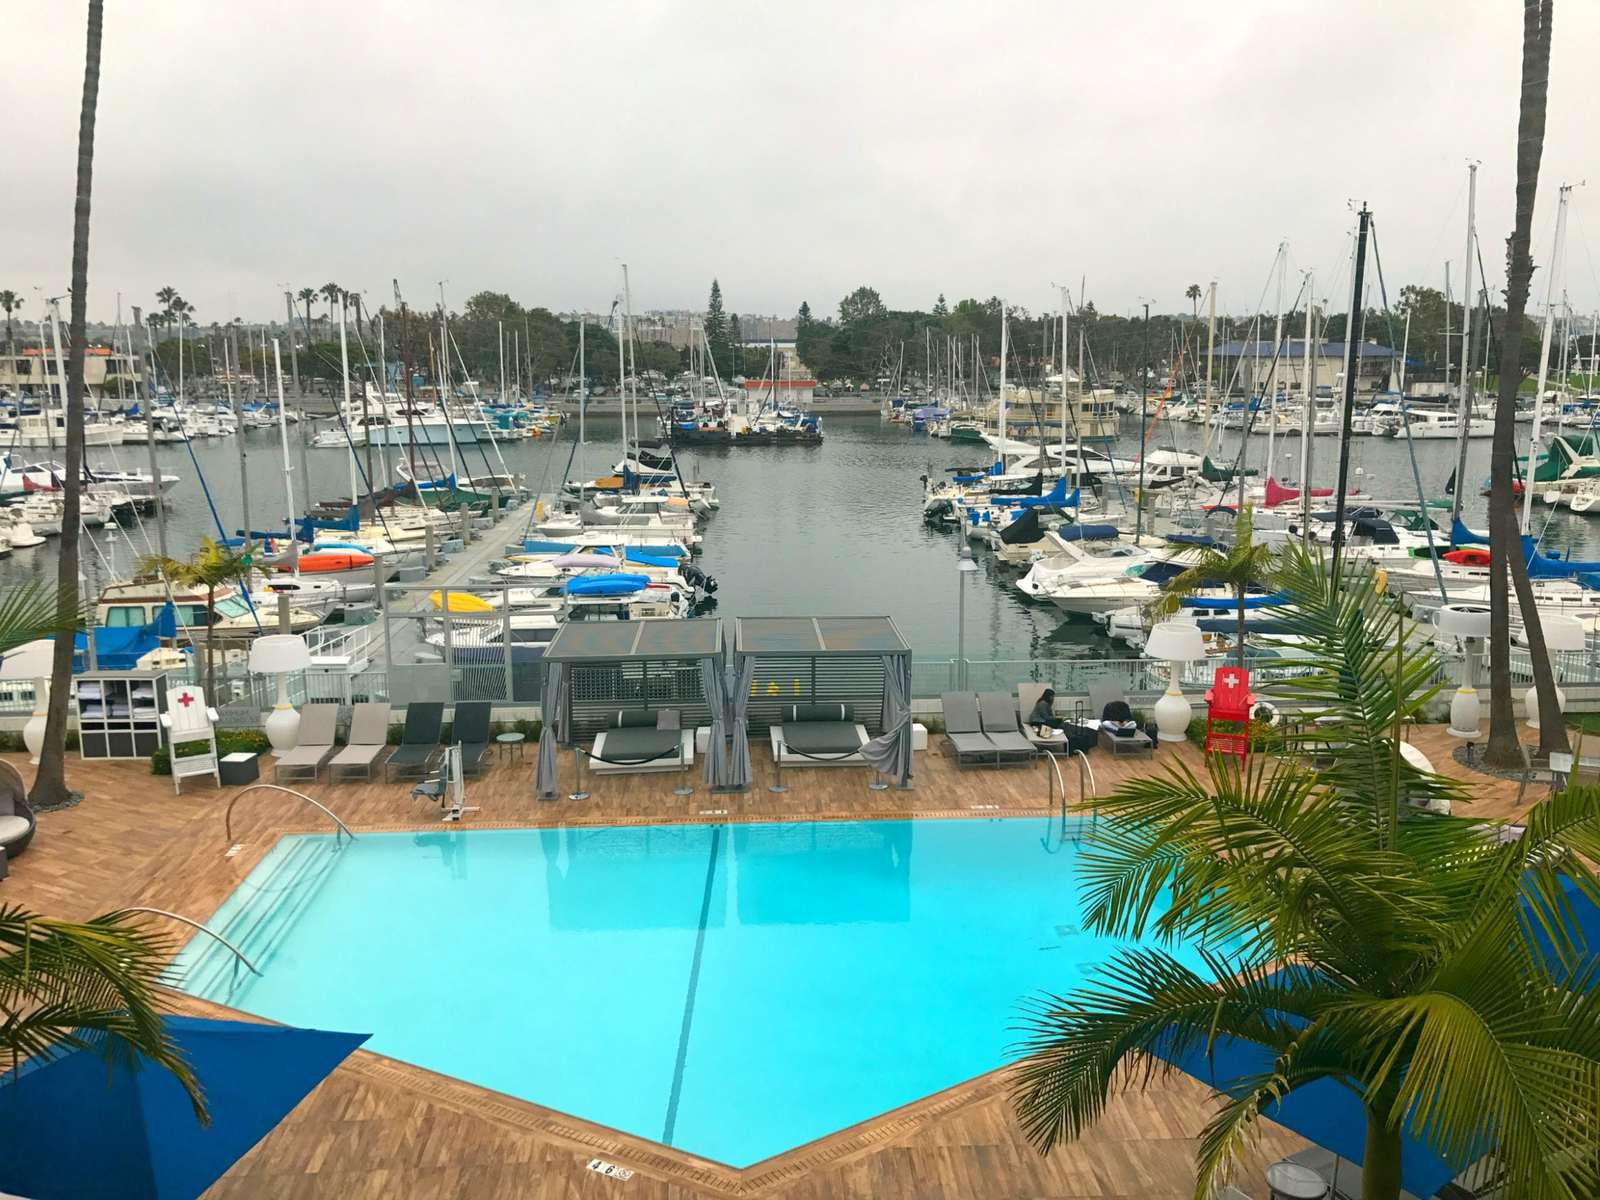 view of the marina from a window at the marina del rey hotel. in the picture are several boats in a marina and a swimming pool